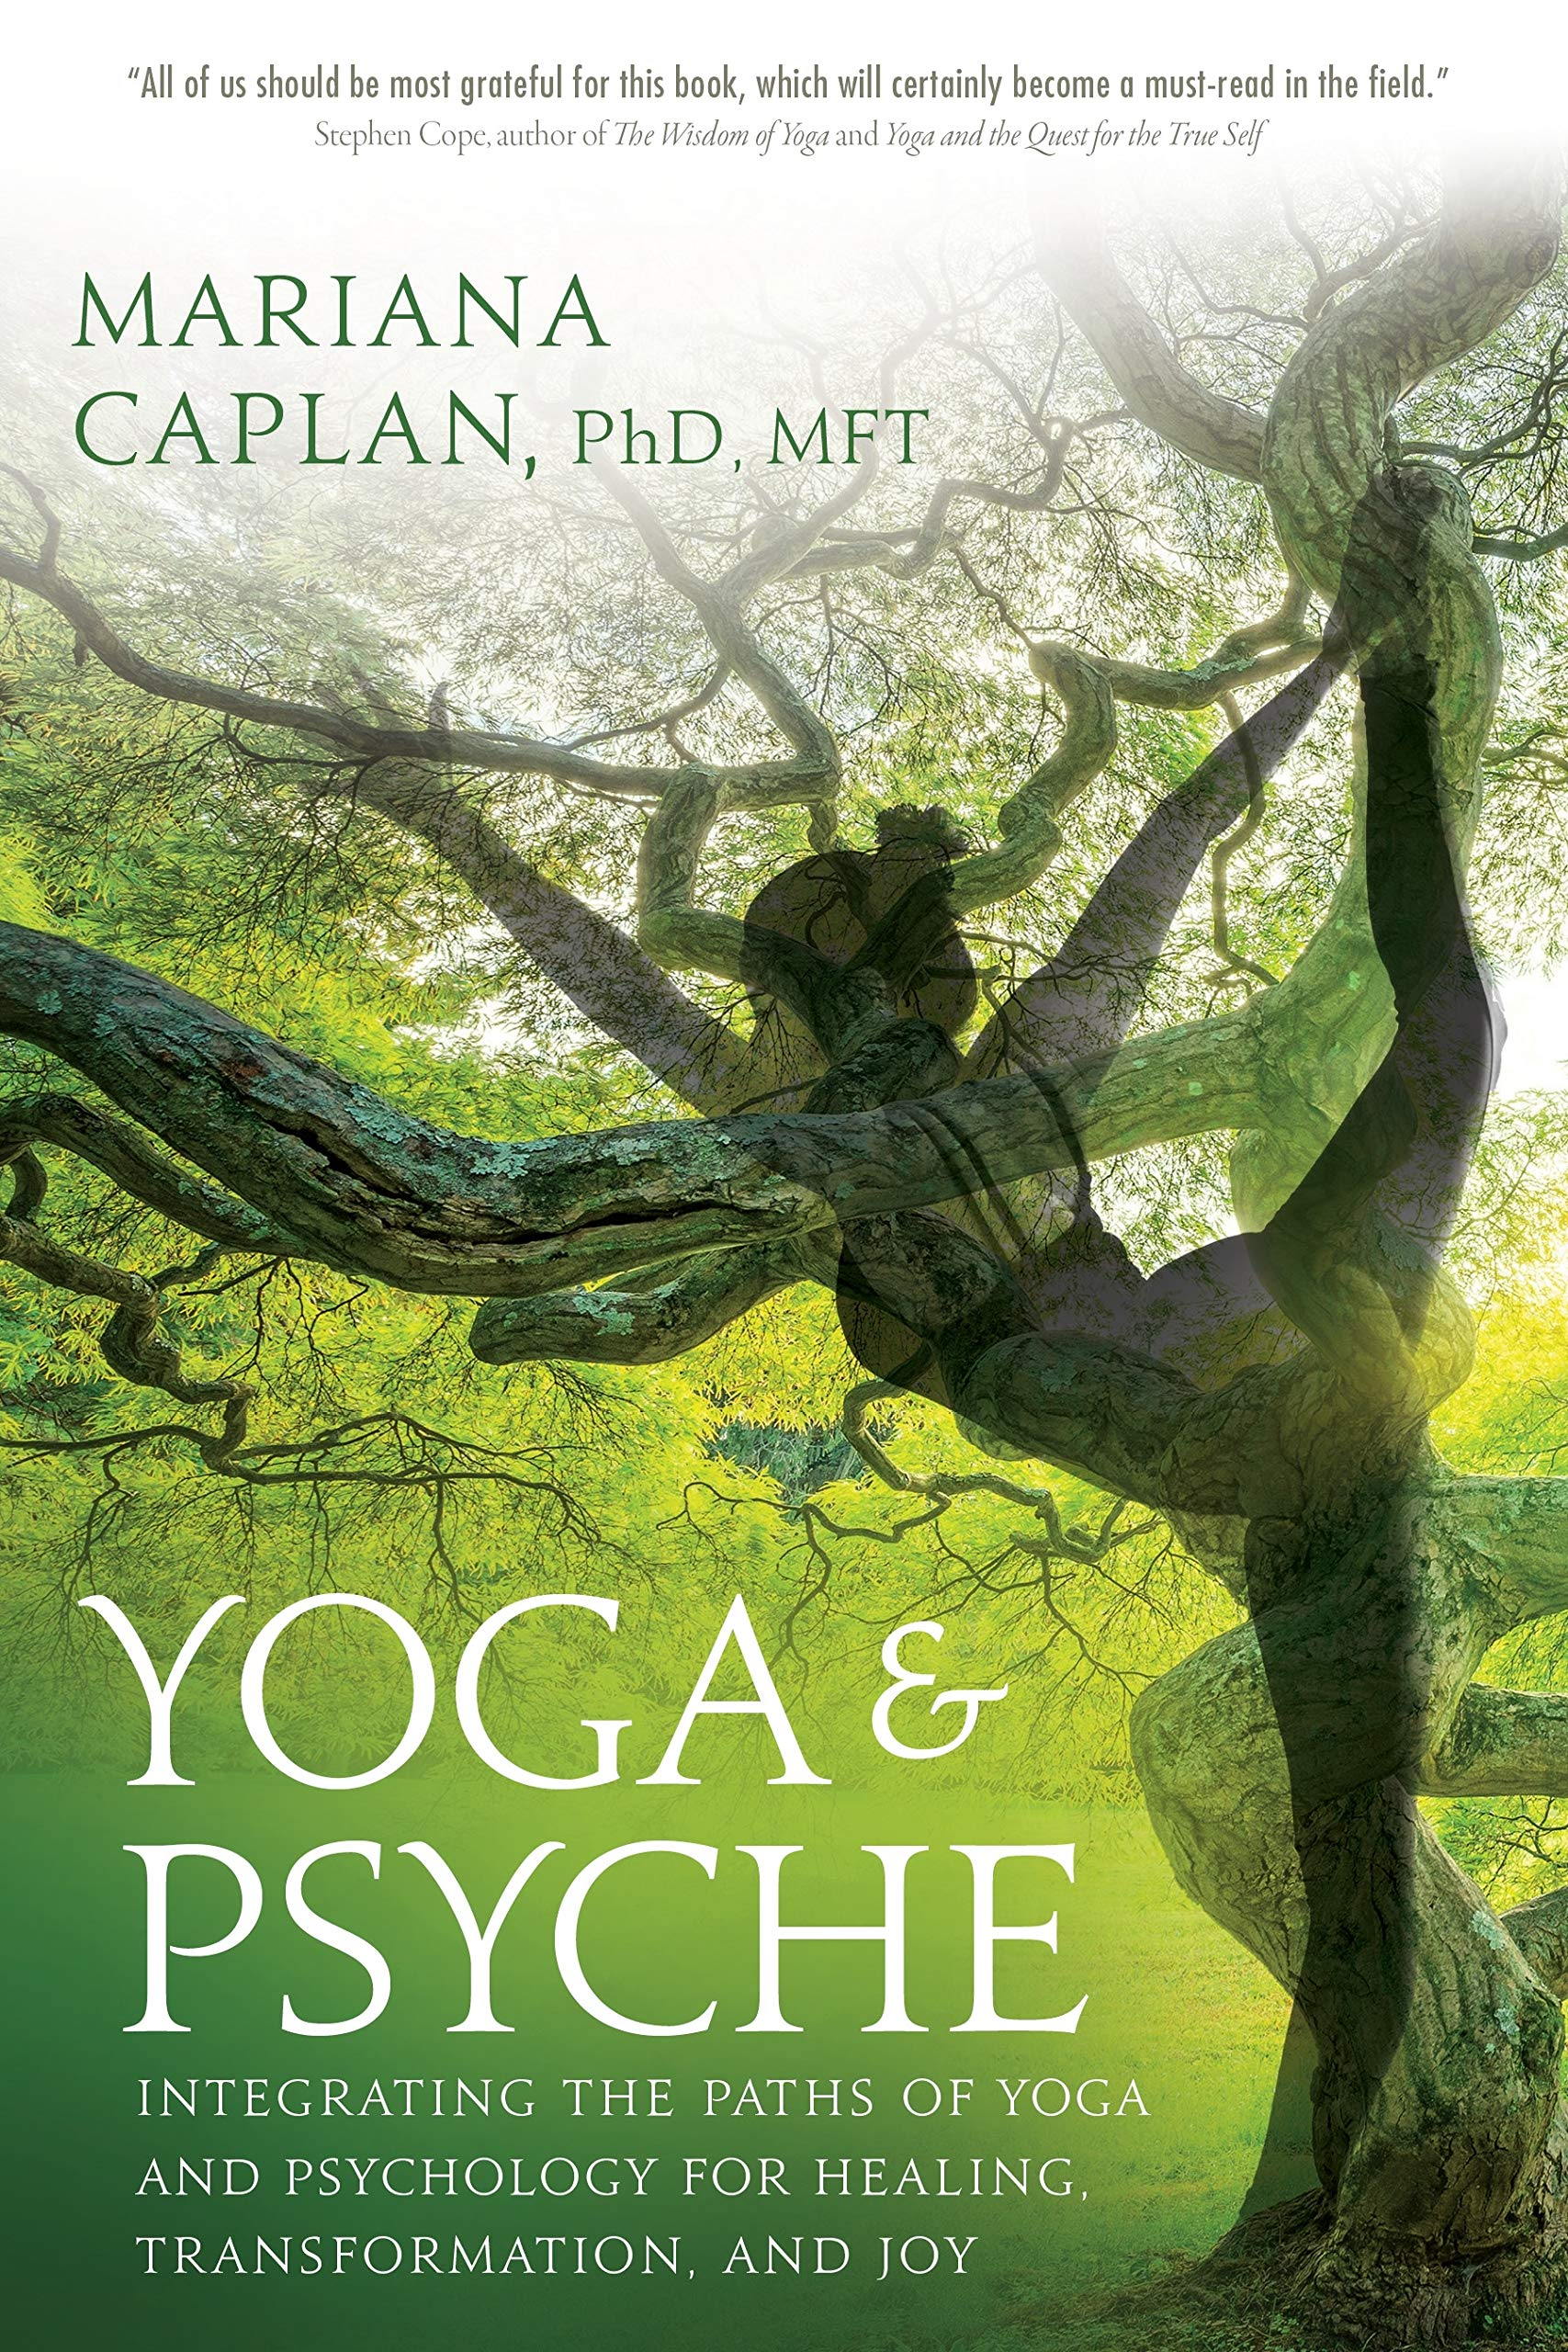 Amazon.com: Yoga & Psyche: Integrating the Paths of Yoga and ...